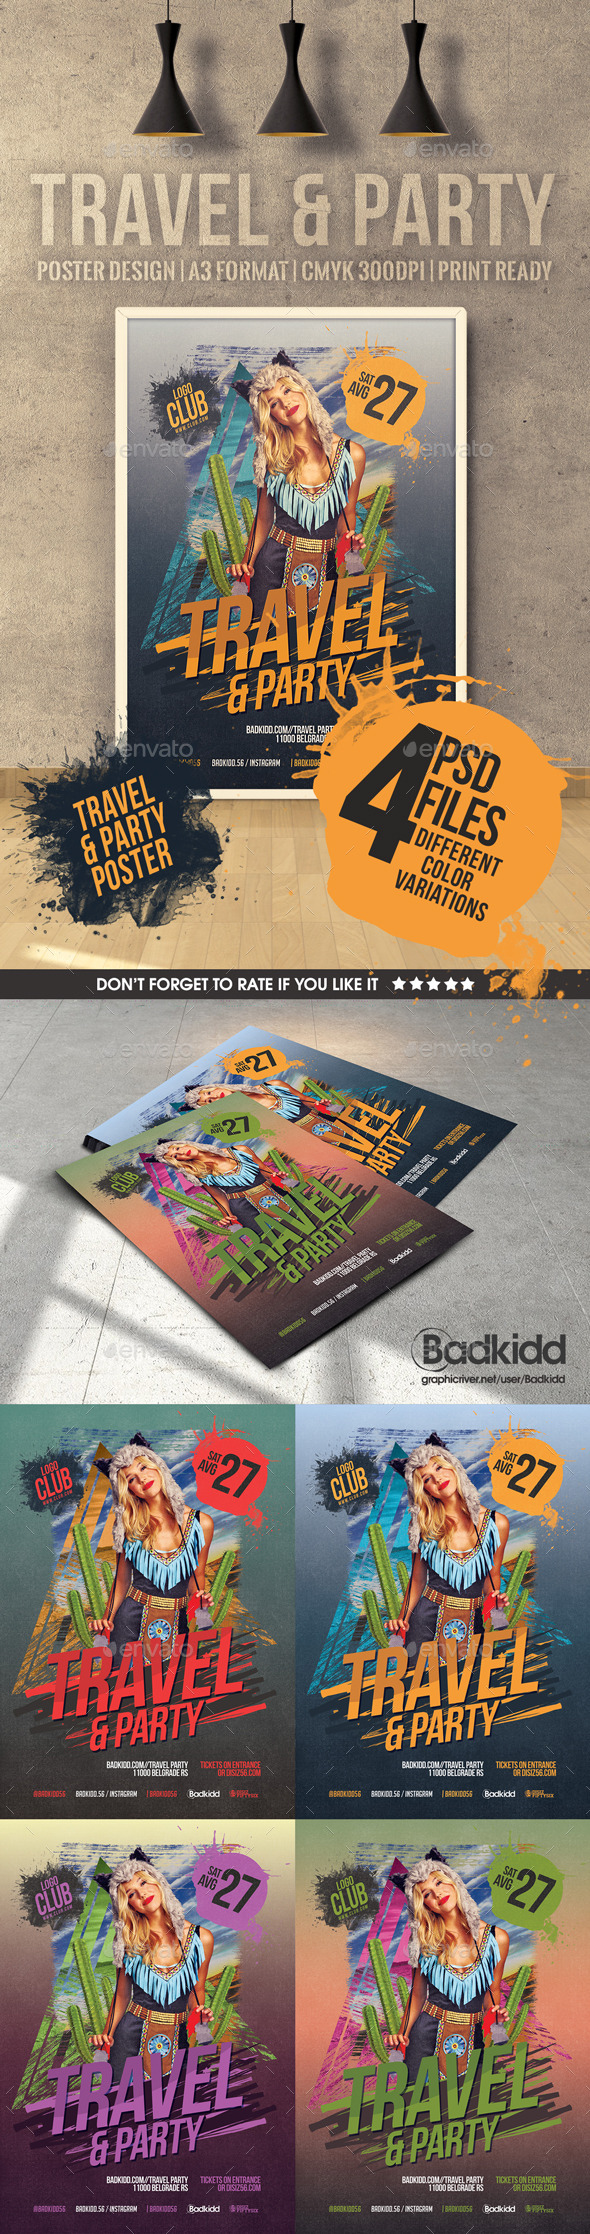 GraphicRiver Travel & Party poster 11889794